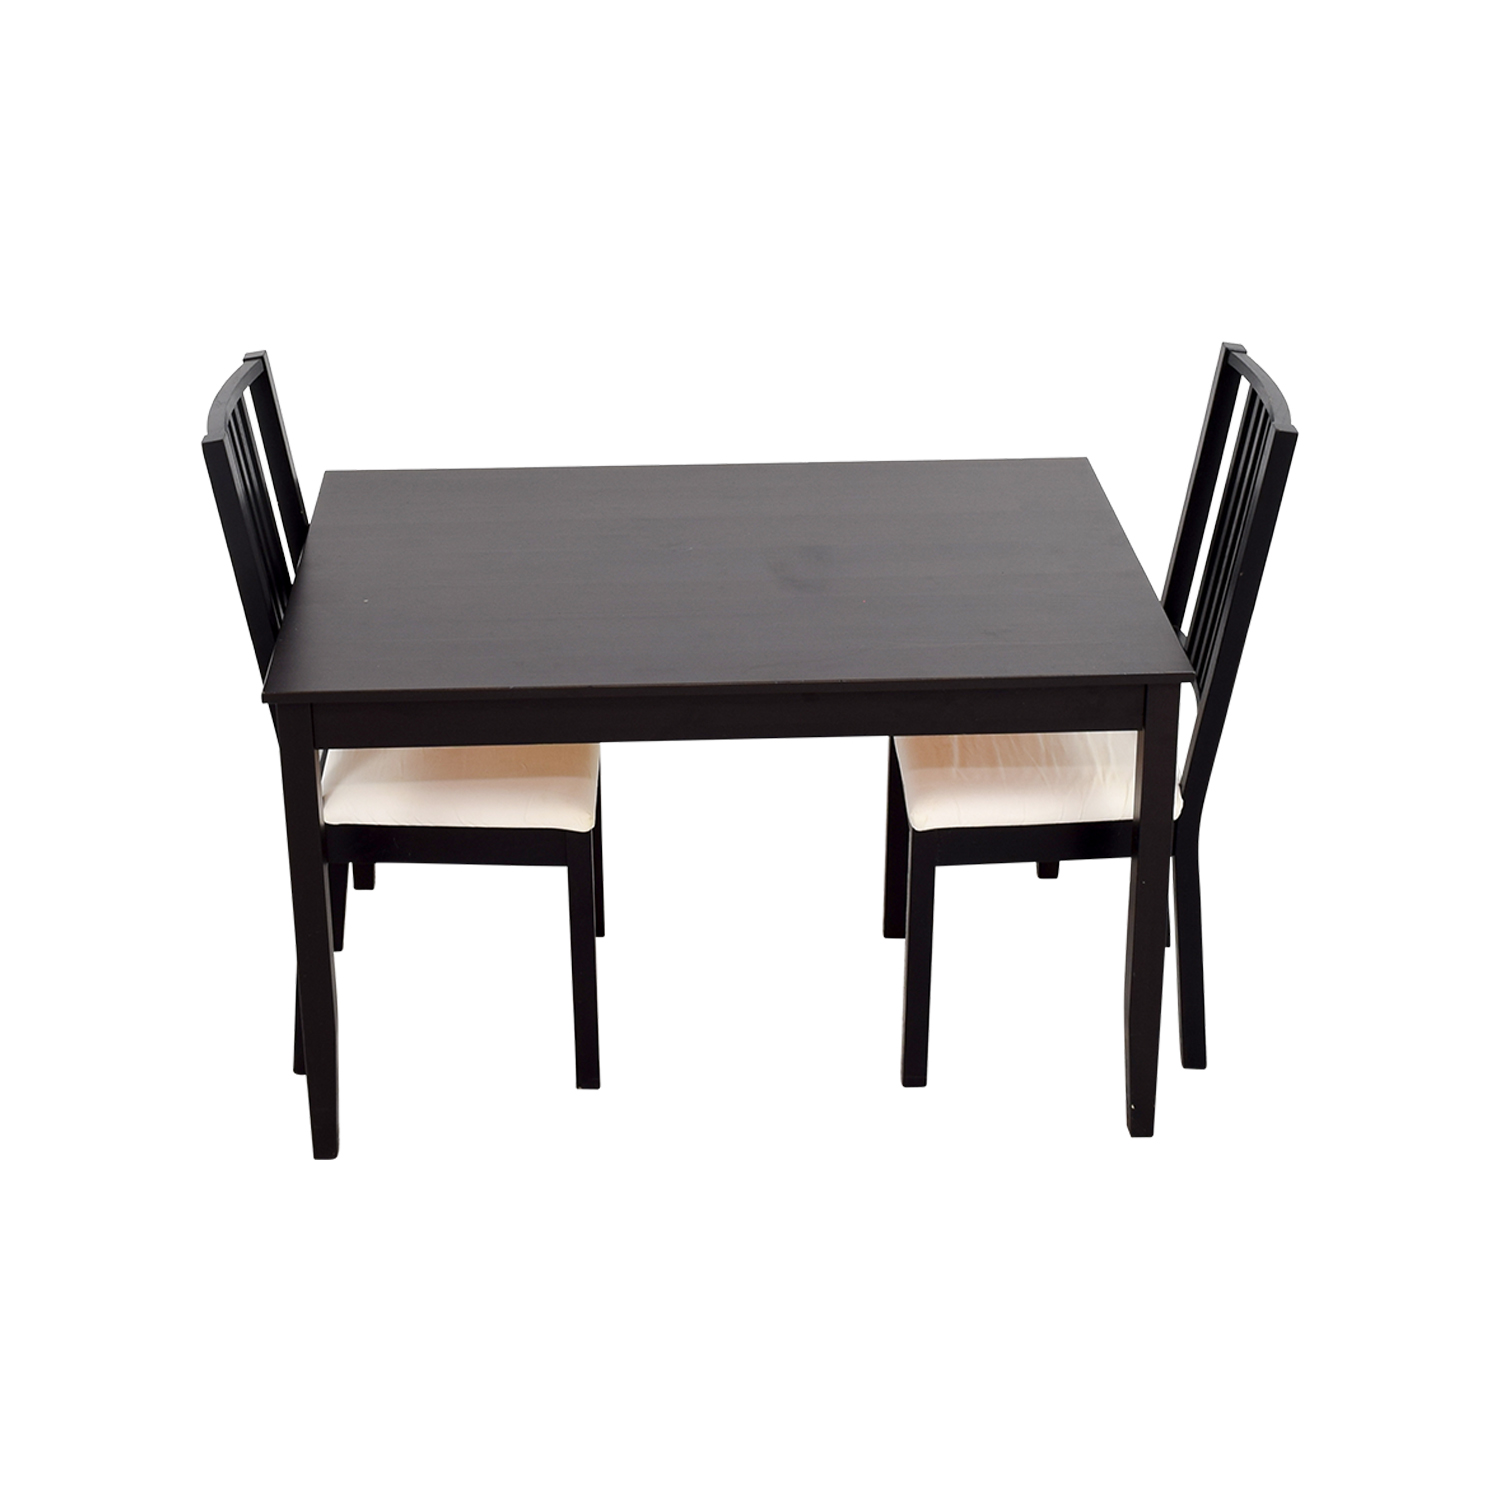 62 off ikea ikea three piece dining set tables. Black Bedroom Furniture Sets. Home Design Ideas